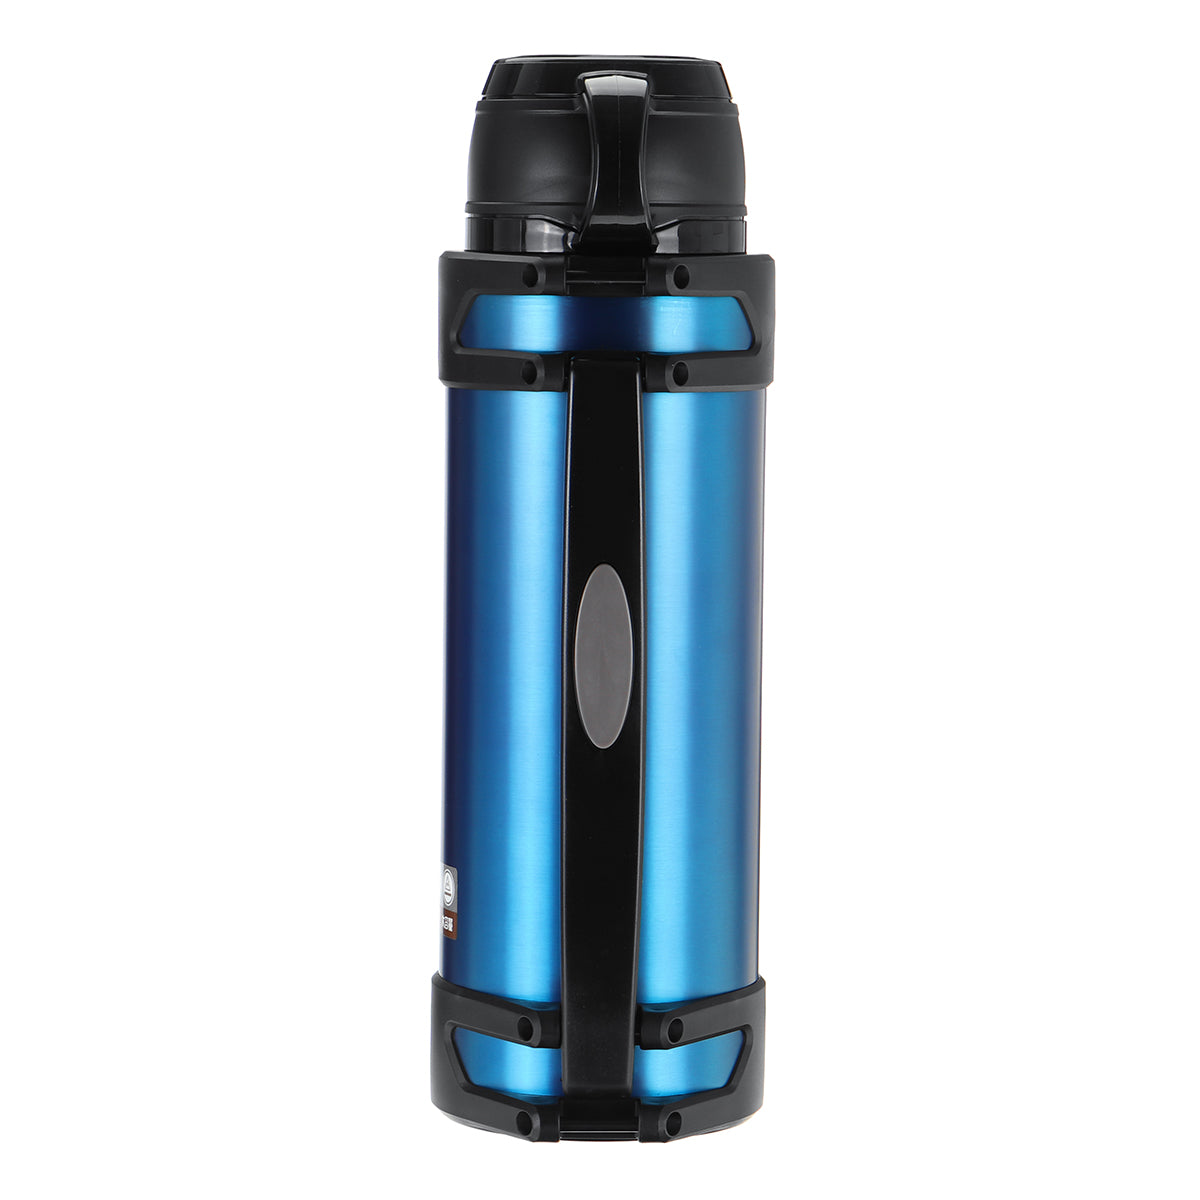 cozyrex,3000ml Vacuum Cup Stainless Steel Insulated Water Bottle Large Capacity Camping Hunting Water Pot,CozyRex,